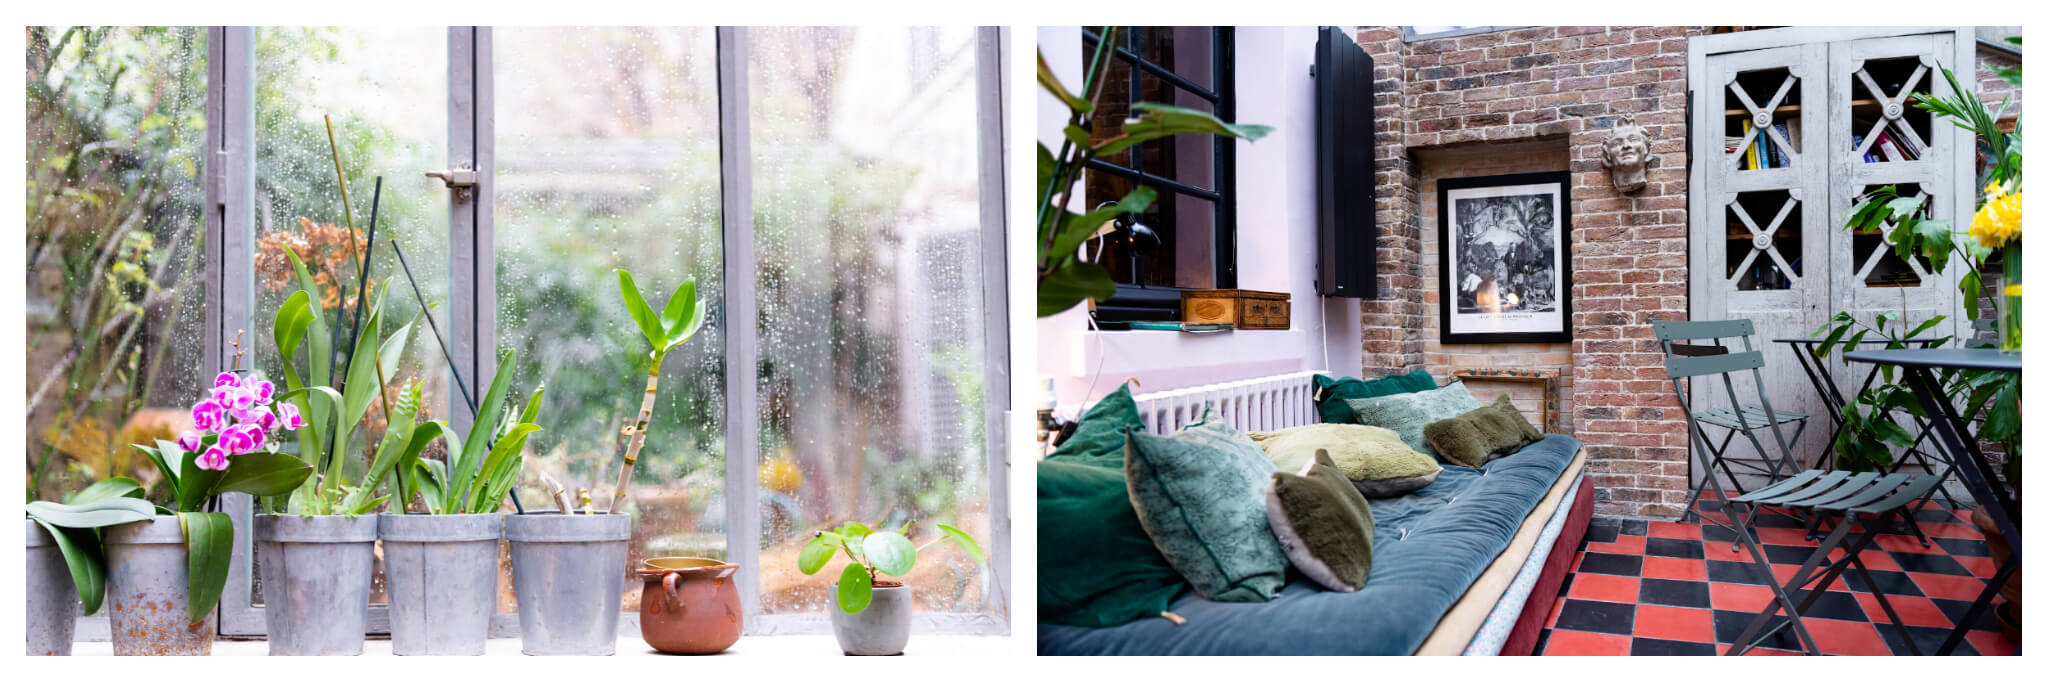 Left: Potted plants line a windowsill at Treize au Jardin in Paris' Latin Quarter, Right: A green bench lined with pillows sits in a room with brick walls and red and black tiled floors at Le 66